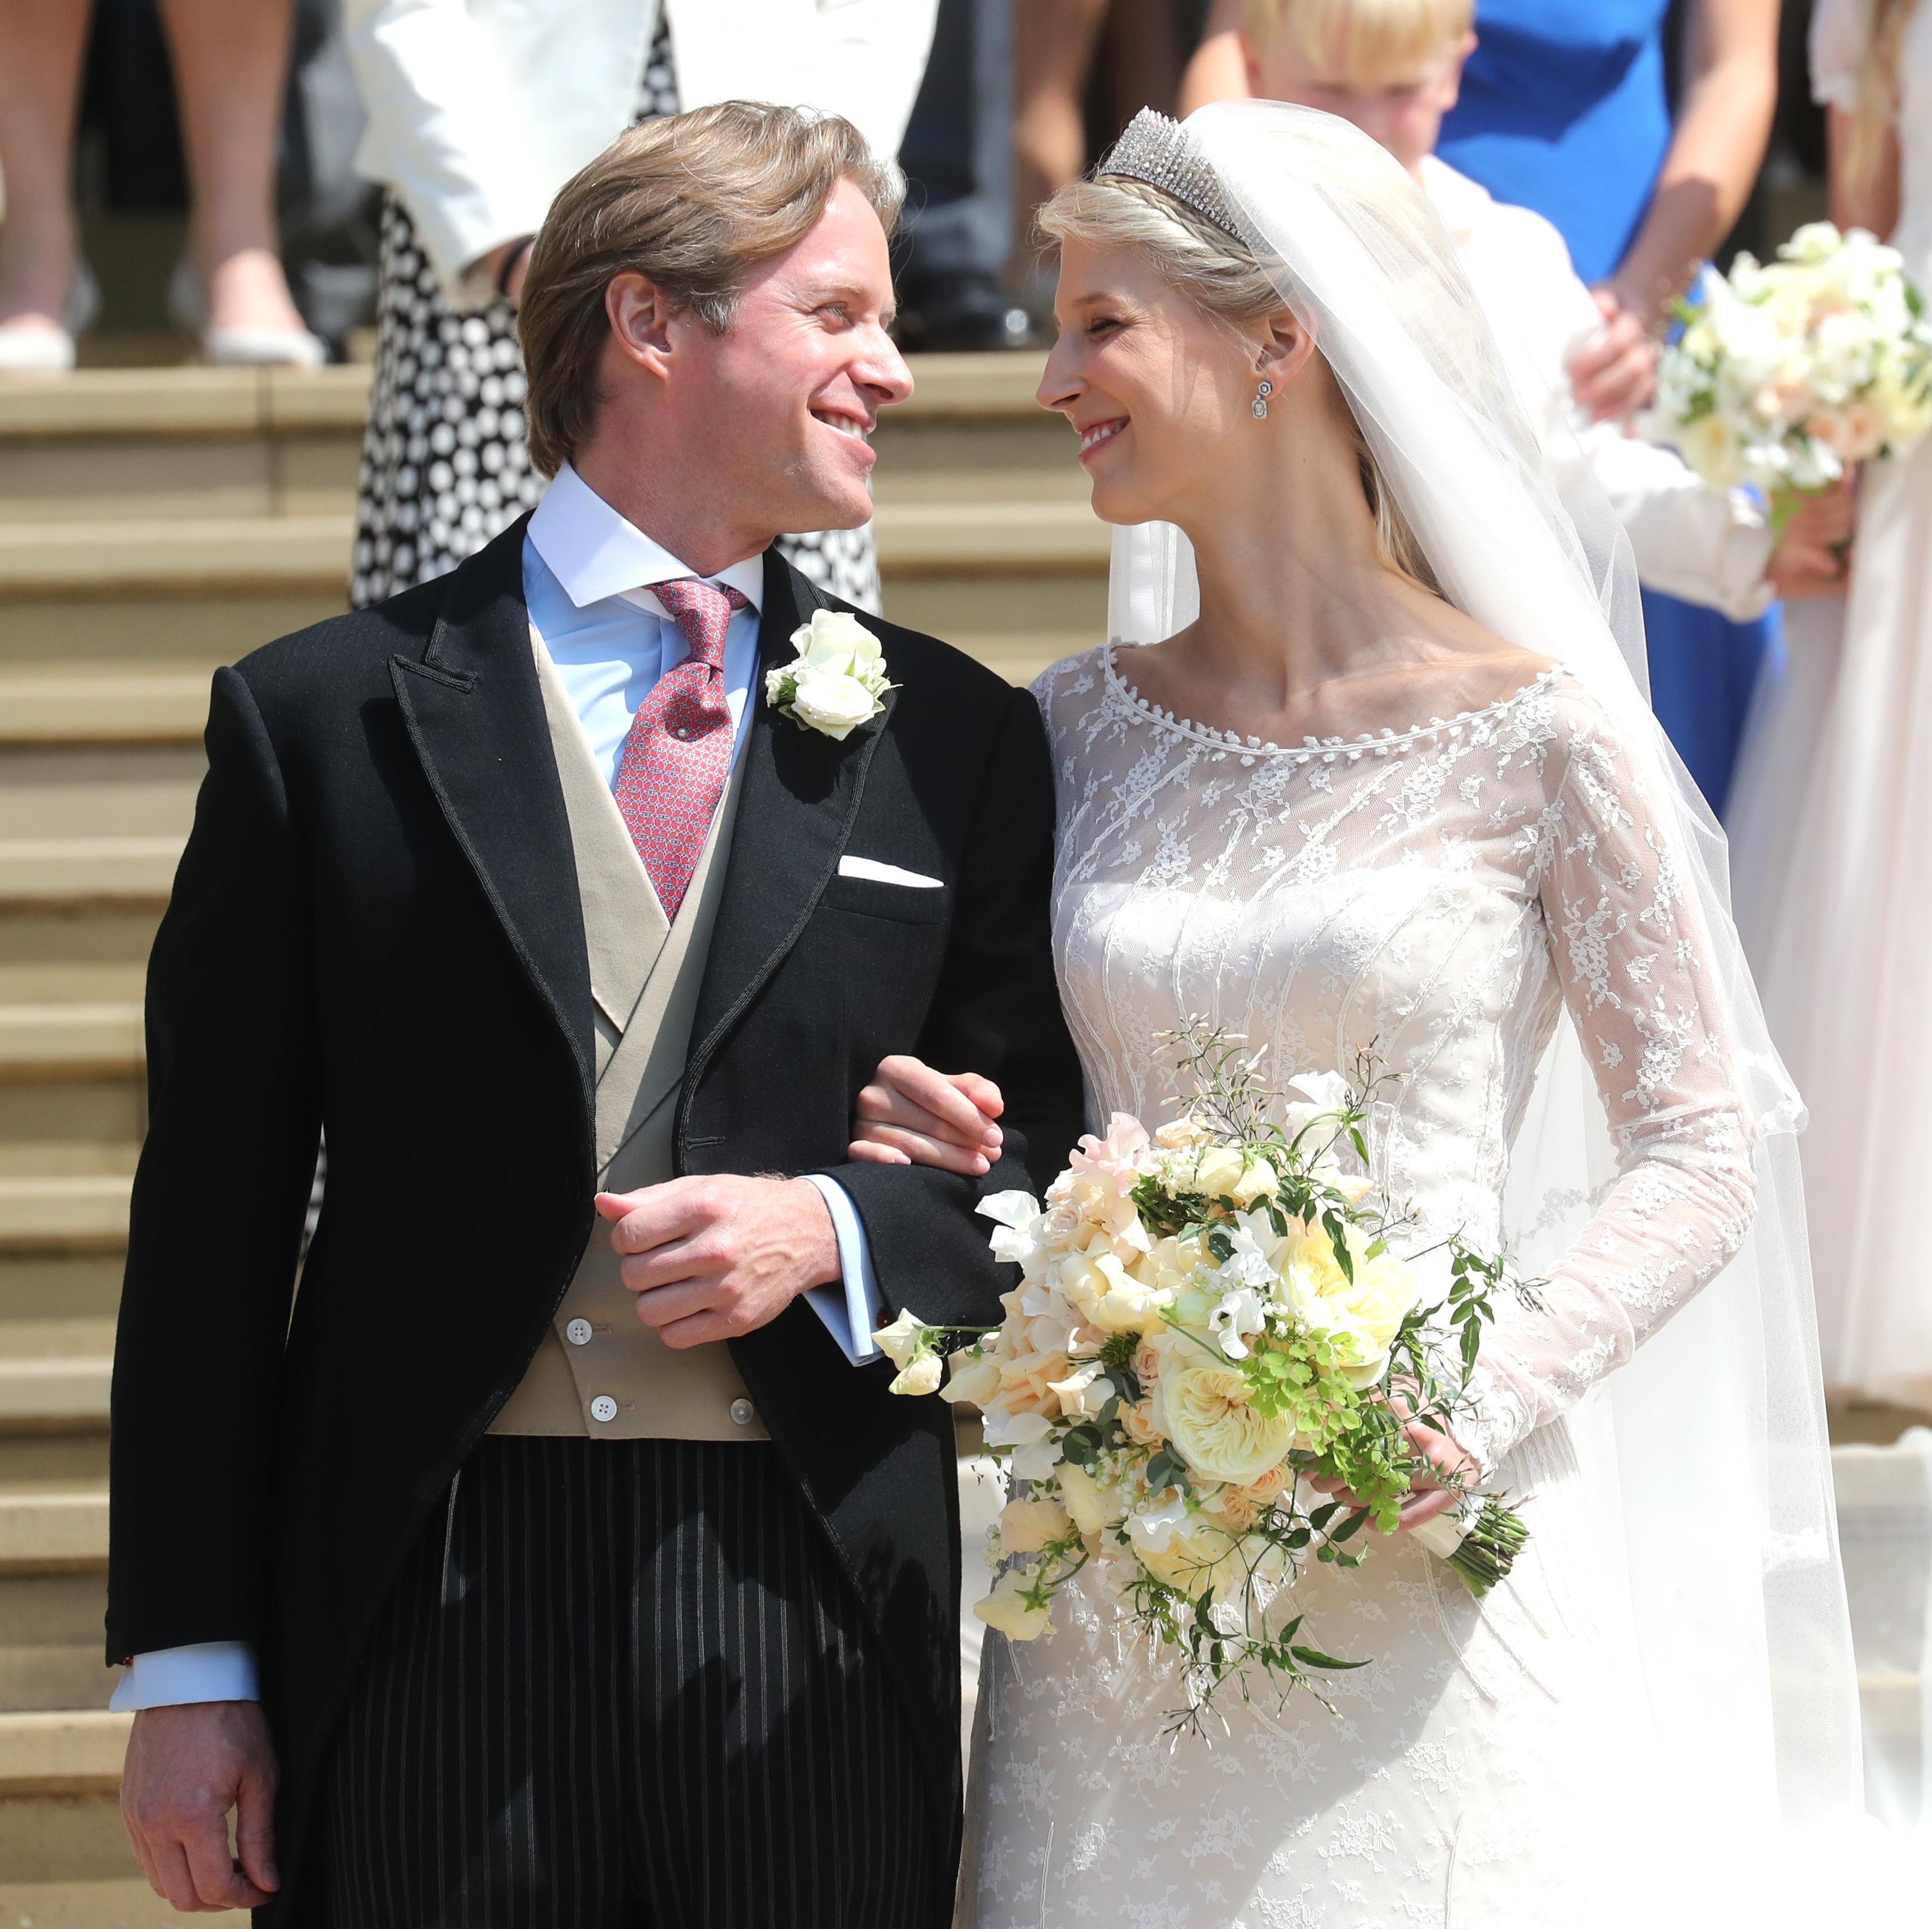 This morning, Lady Gabriella Windsor, daughter of Prince and Princess Michael of Kent (and first cousin once removed to Queen Elizabeth) marries Thomas Kingston at St George's Chapel at Windsor Chapel, the very same venue for both her cousin Princess Eugenie's wedding to Thomas Brooksbank in October 2018 , and of course, Prince Harry's royal wedding to Meghan Markle, the now Duchess of Sussex, just one year ago . Follow along with their nuptial celebrations with all of the photos of the royal family, their guests, and of course, the revelry.